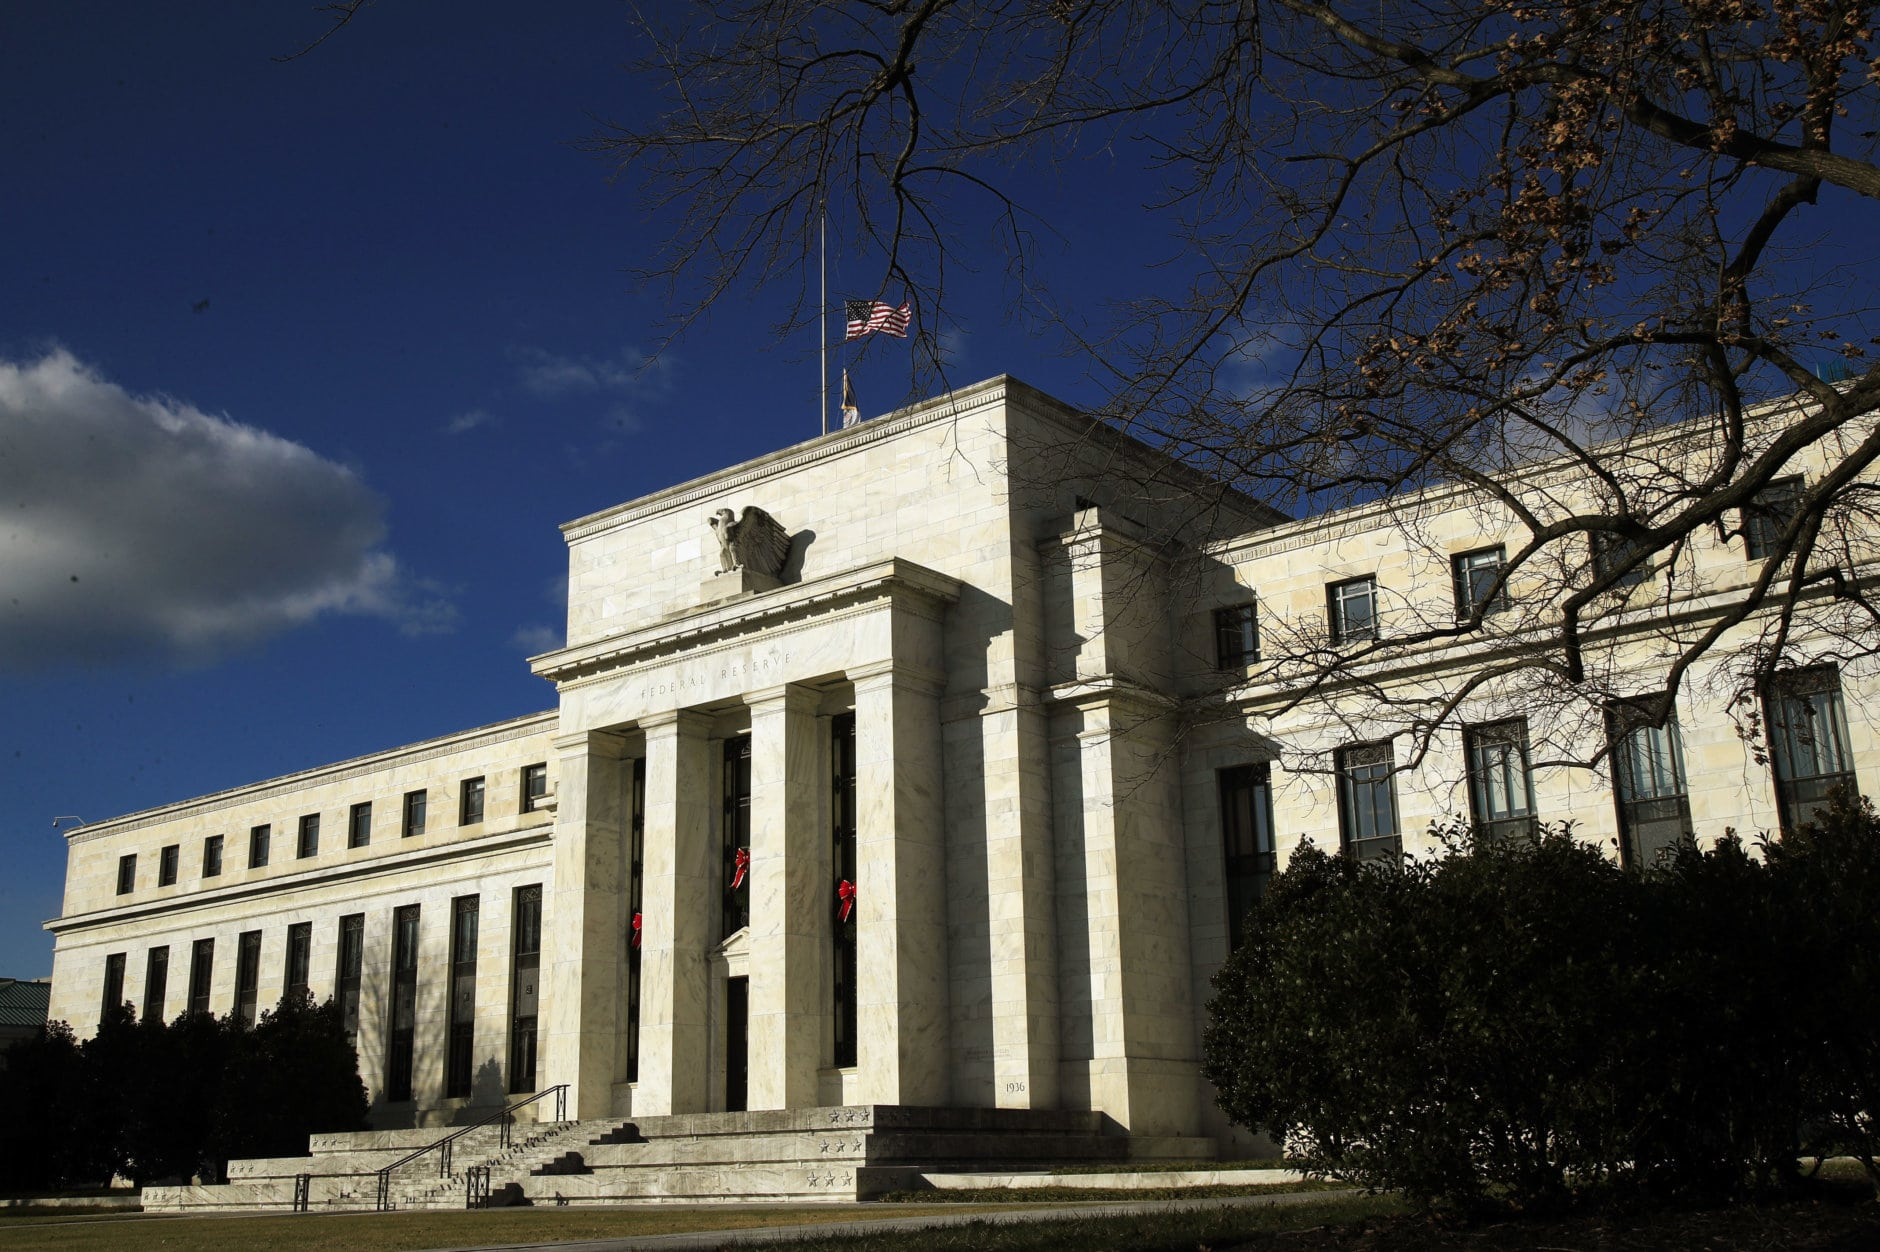 The Federal Reserve building is seen during a partial government shutdown in Washington, Monday, Dec. 24, 2018. President Donald Trump's attacks on the Federal Reserve spooked the stock market on Christmas Eve, and efforts by his Treasury secretary to calm investors' fears only seemed to make matters worse, contributing to another day of heavy losses on Wall Street. (AP Photo/Manuel Balce Ceneta)